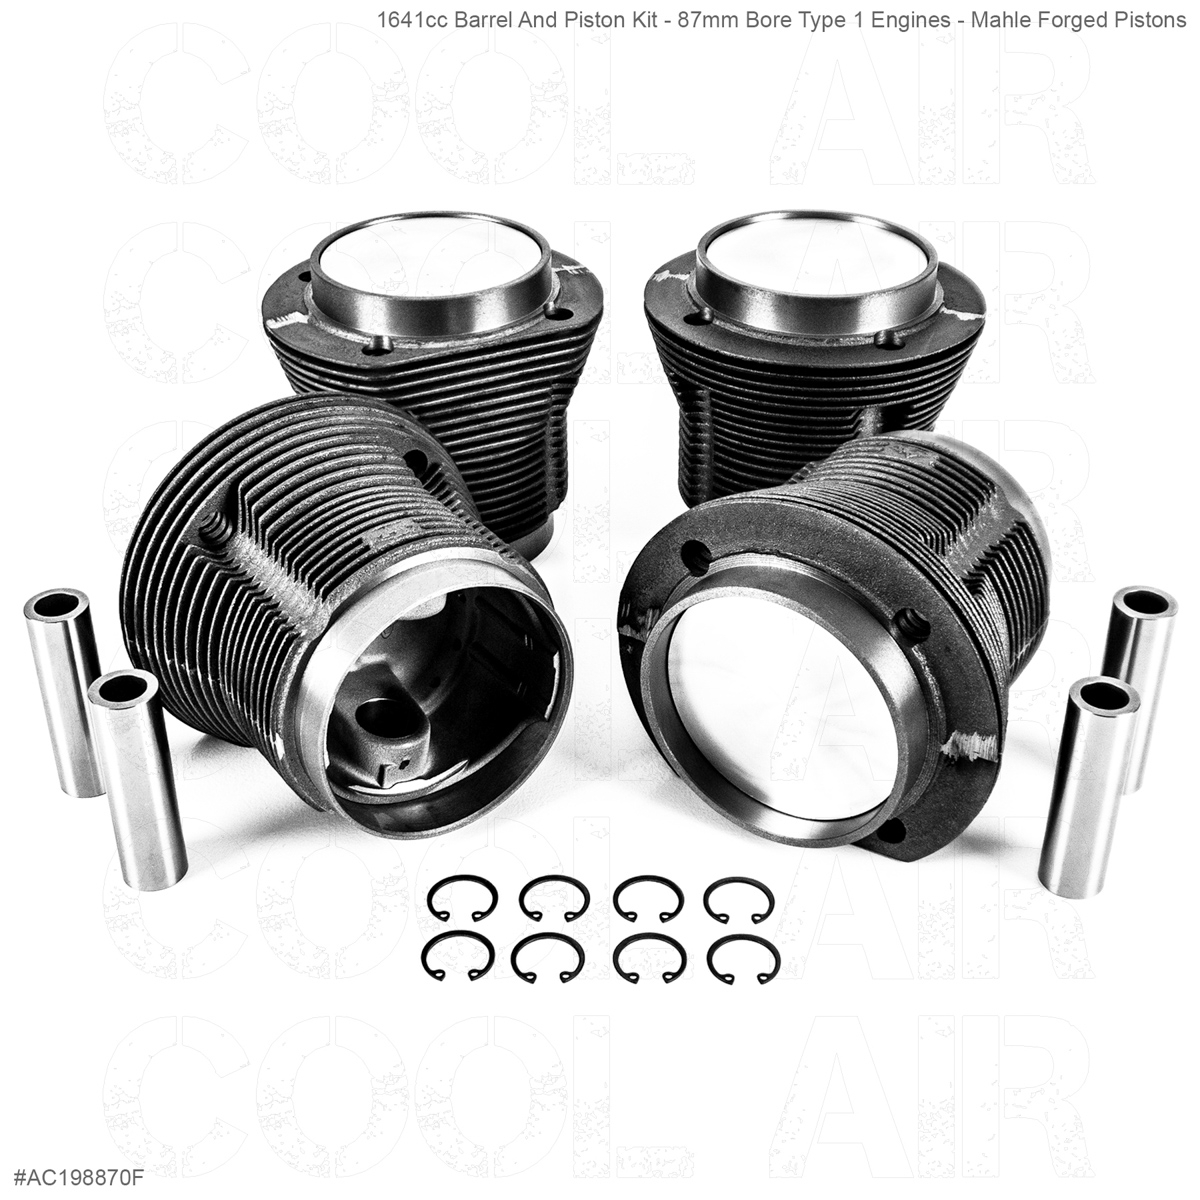 1641cc Barrel And Piston Kit - 87mm Bore Type 1 Engines - Mahle Forged Pistons